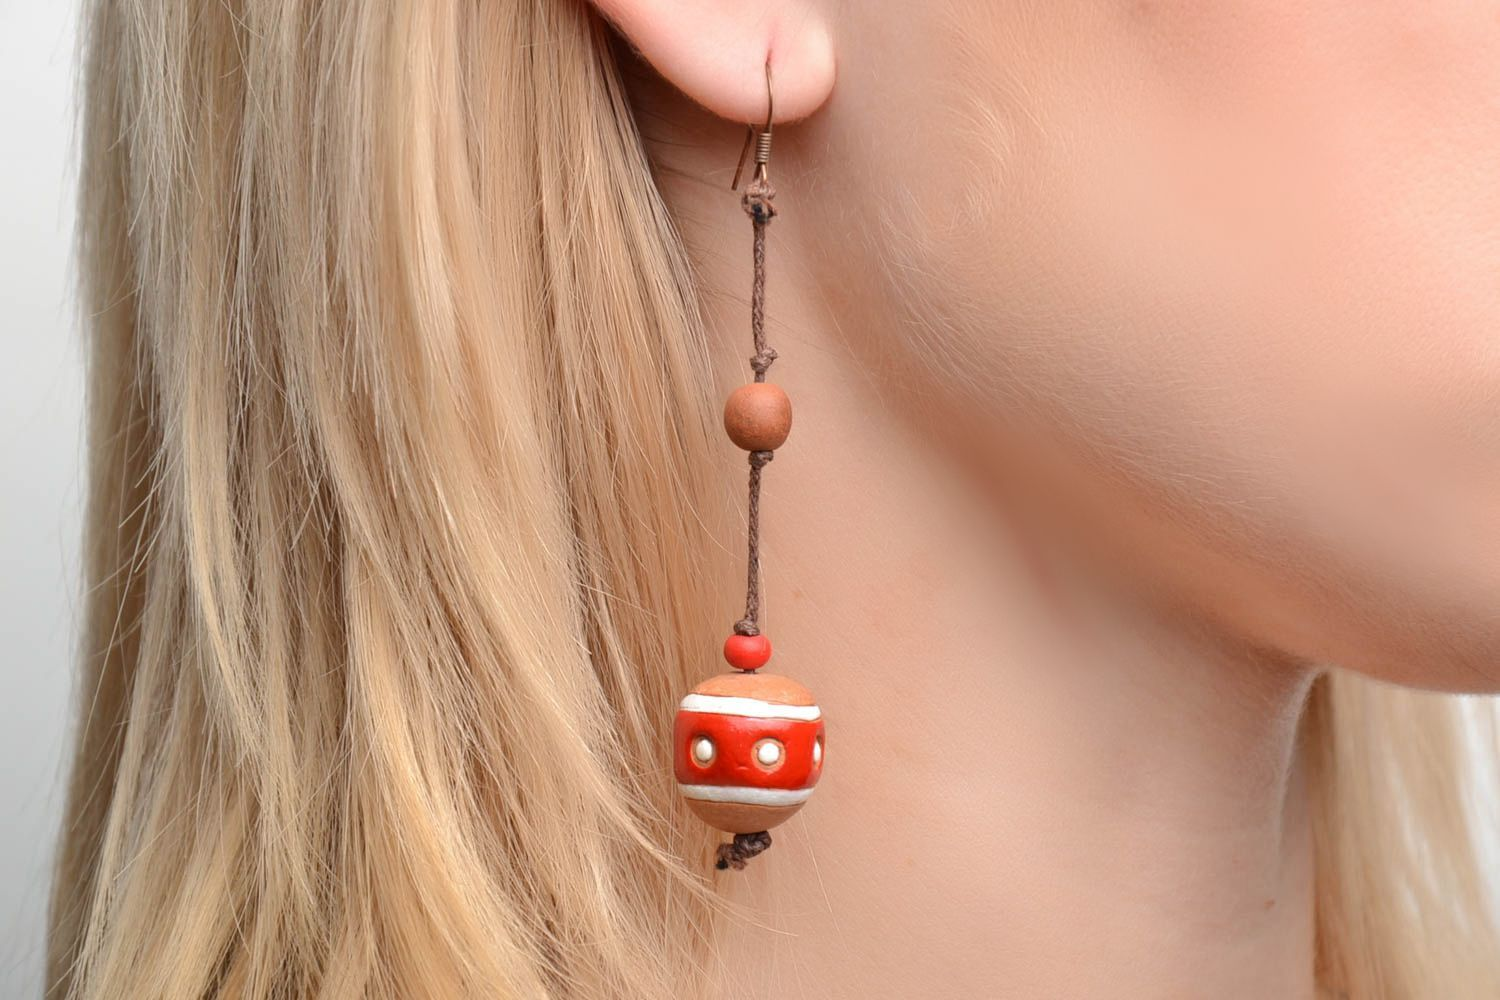 Ceramic ball earrings in eco style photo 2